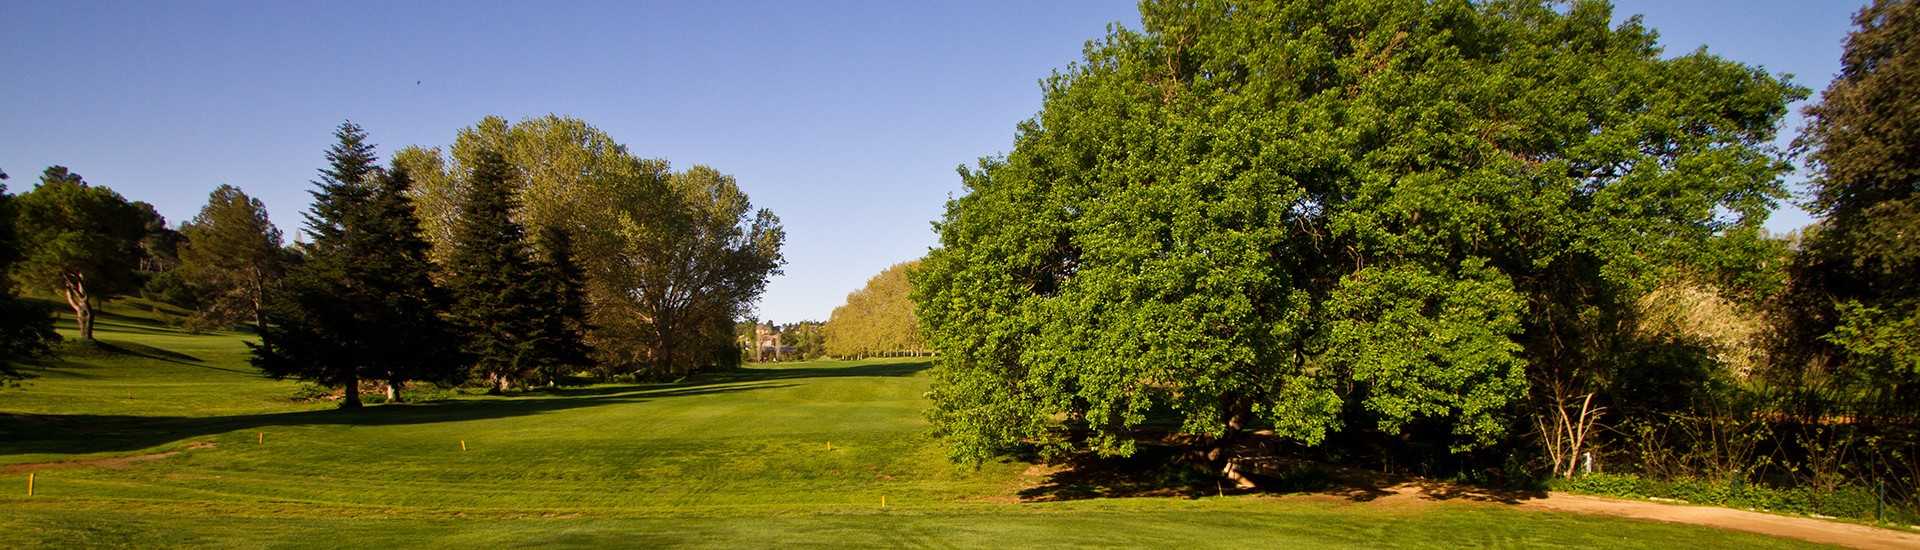 Club de Golf Sant Cugat